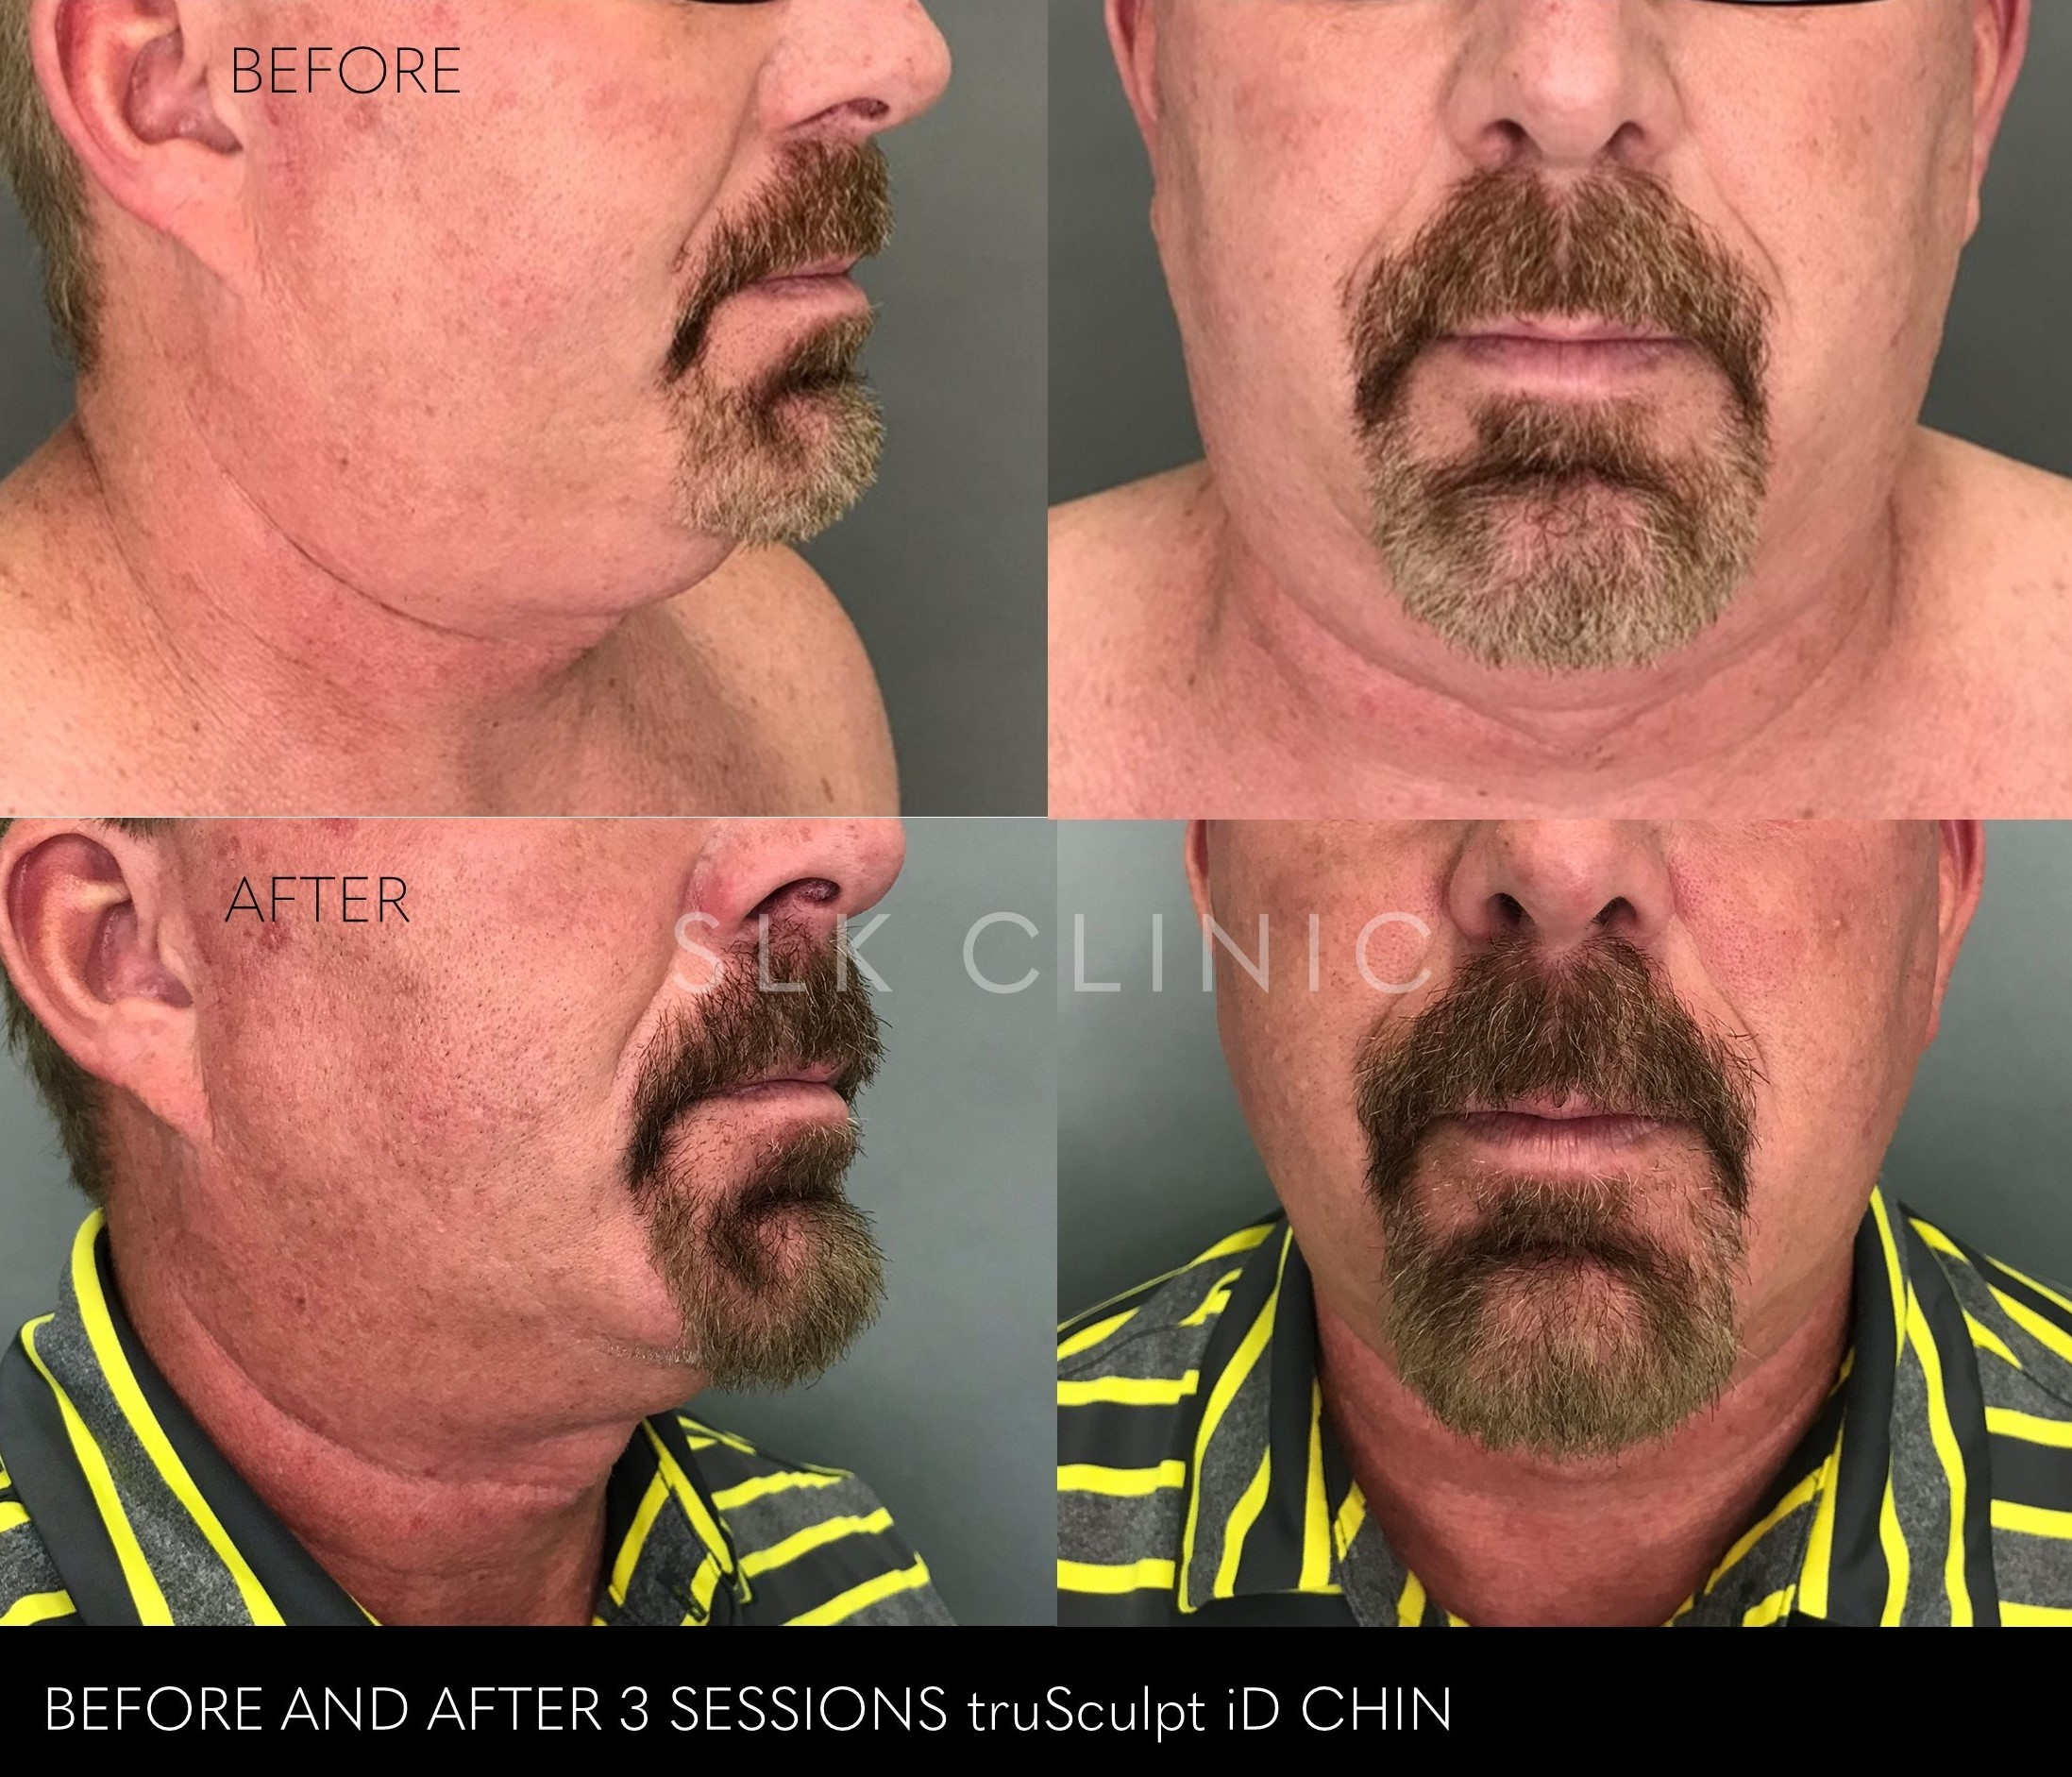 before and after trusculpt chin - 3 sessions - male